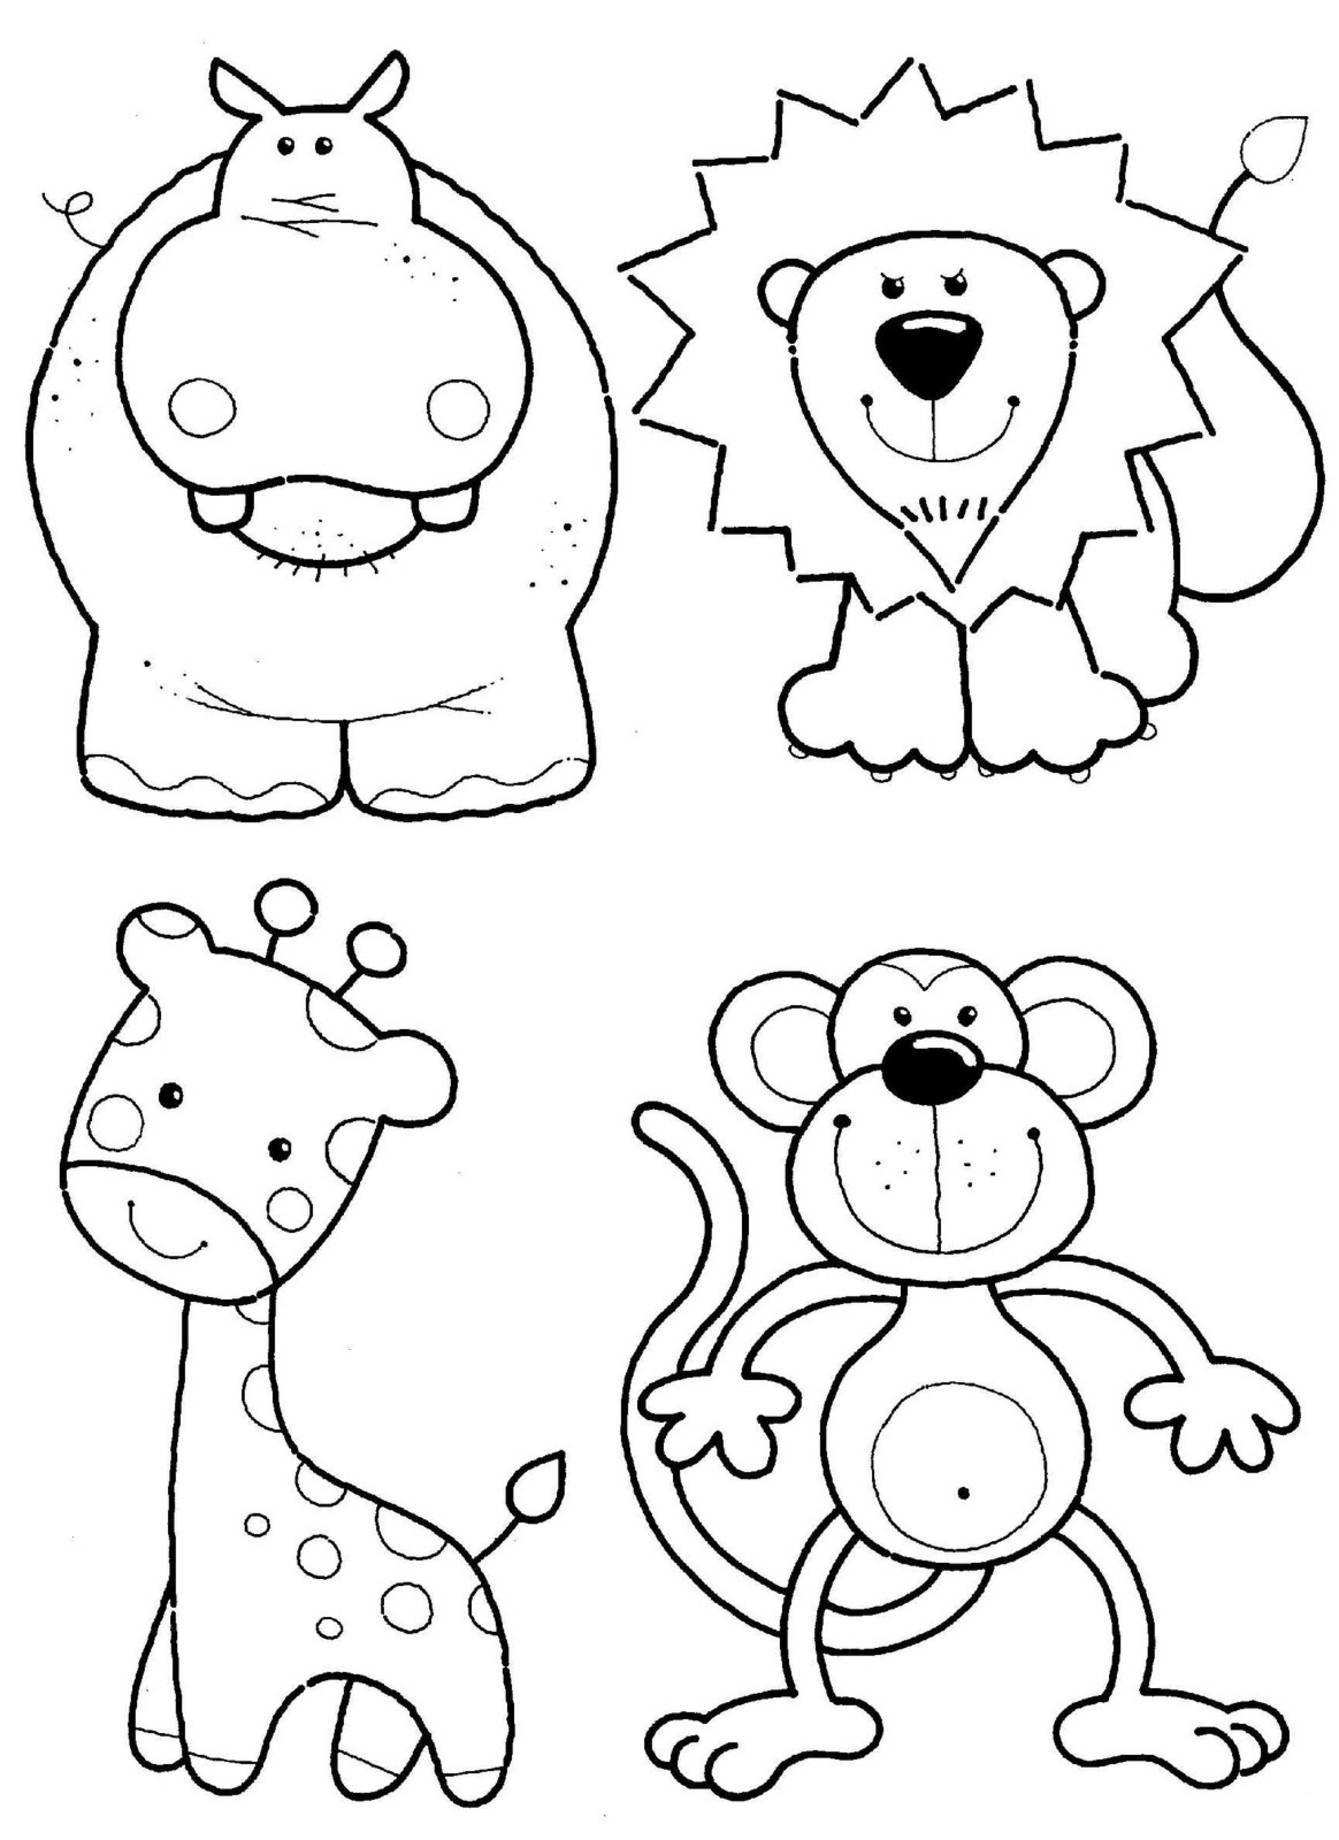 coloring pages cute animals cute animal coloring page hedgehog woo jr kids activities pages animals cute coloring